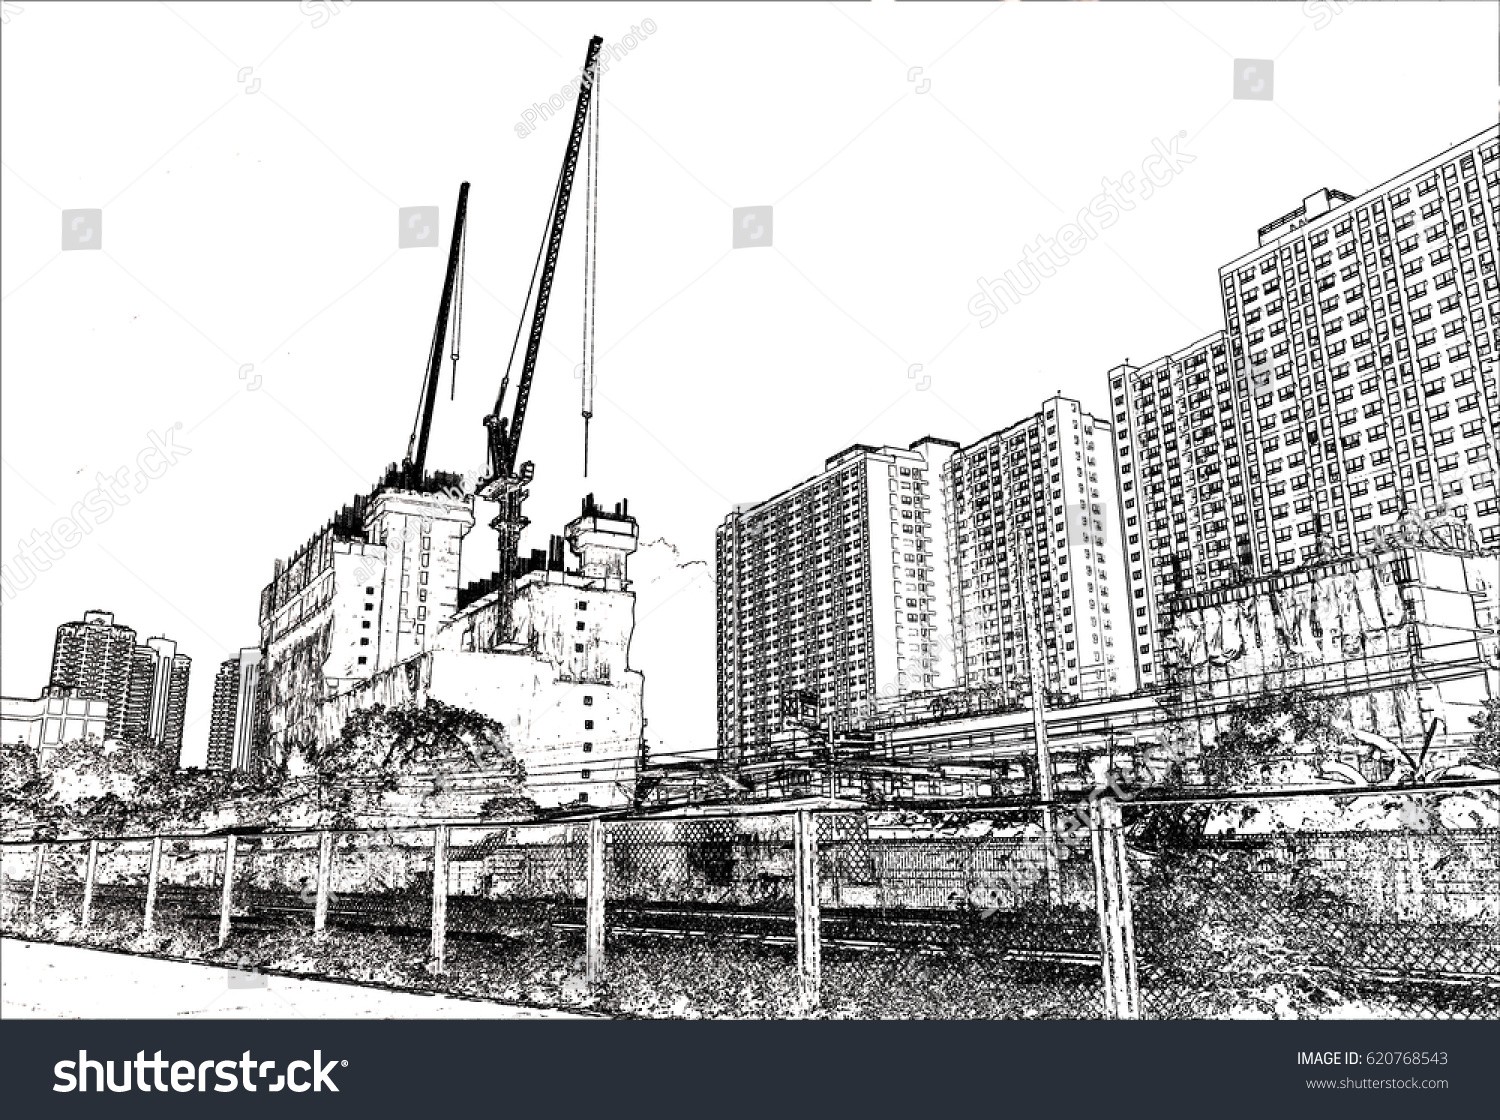 High building landmark sketching Background image with